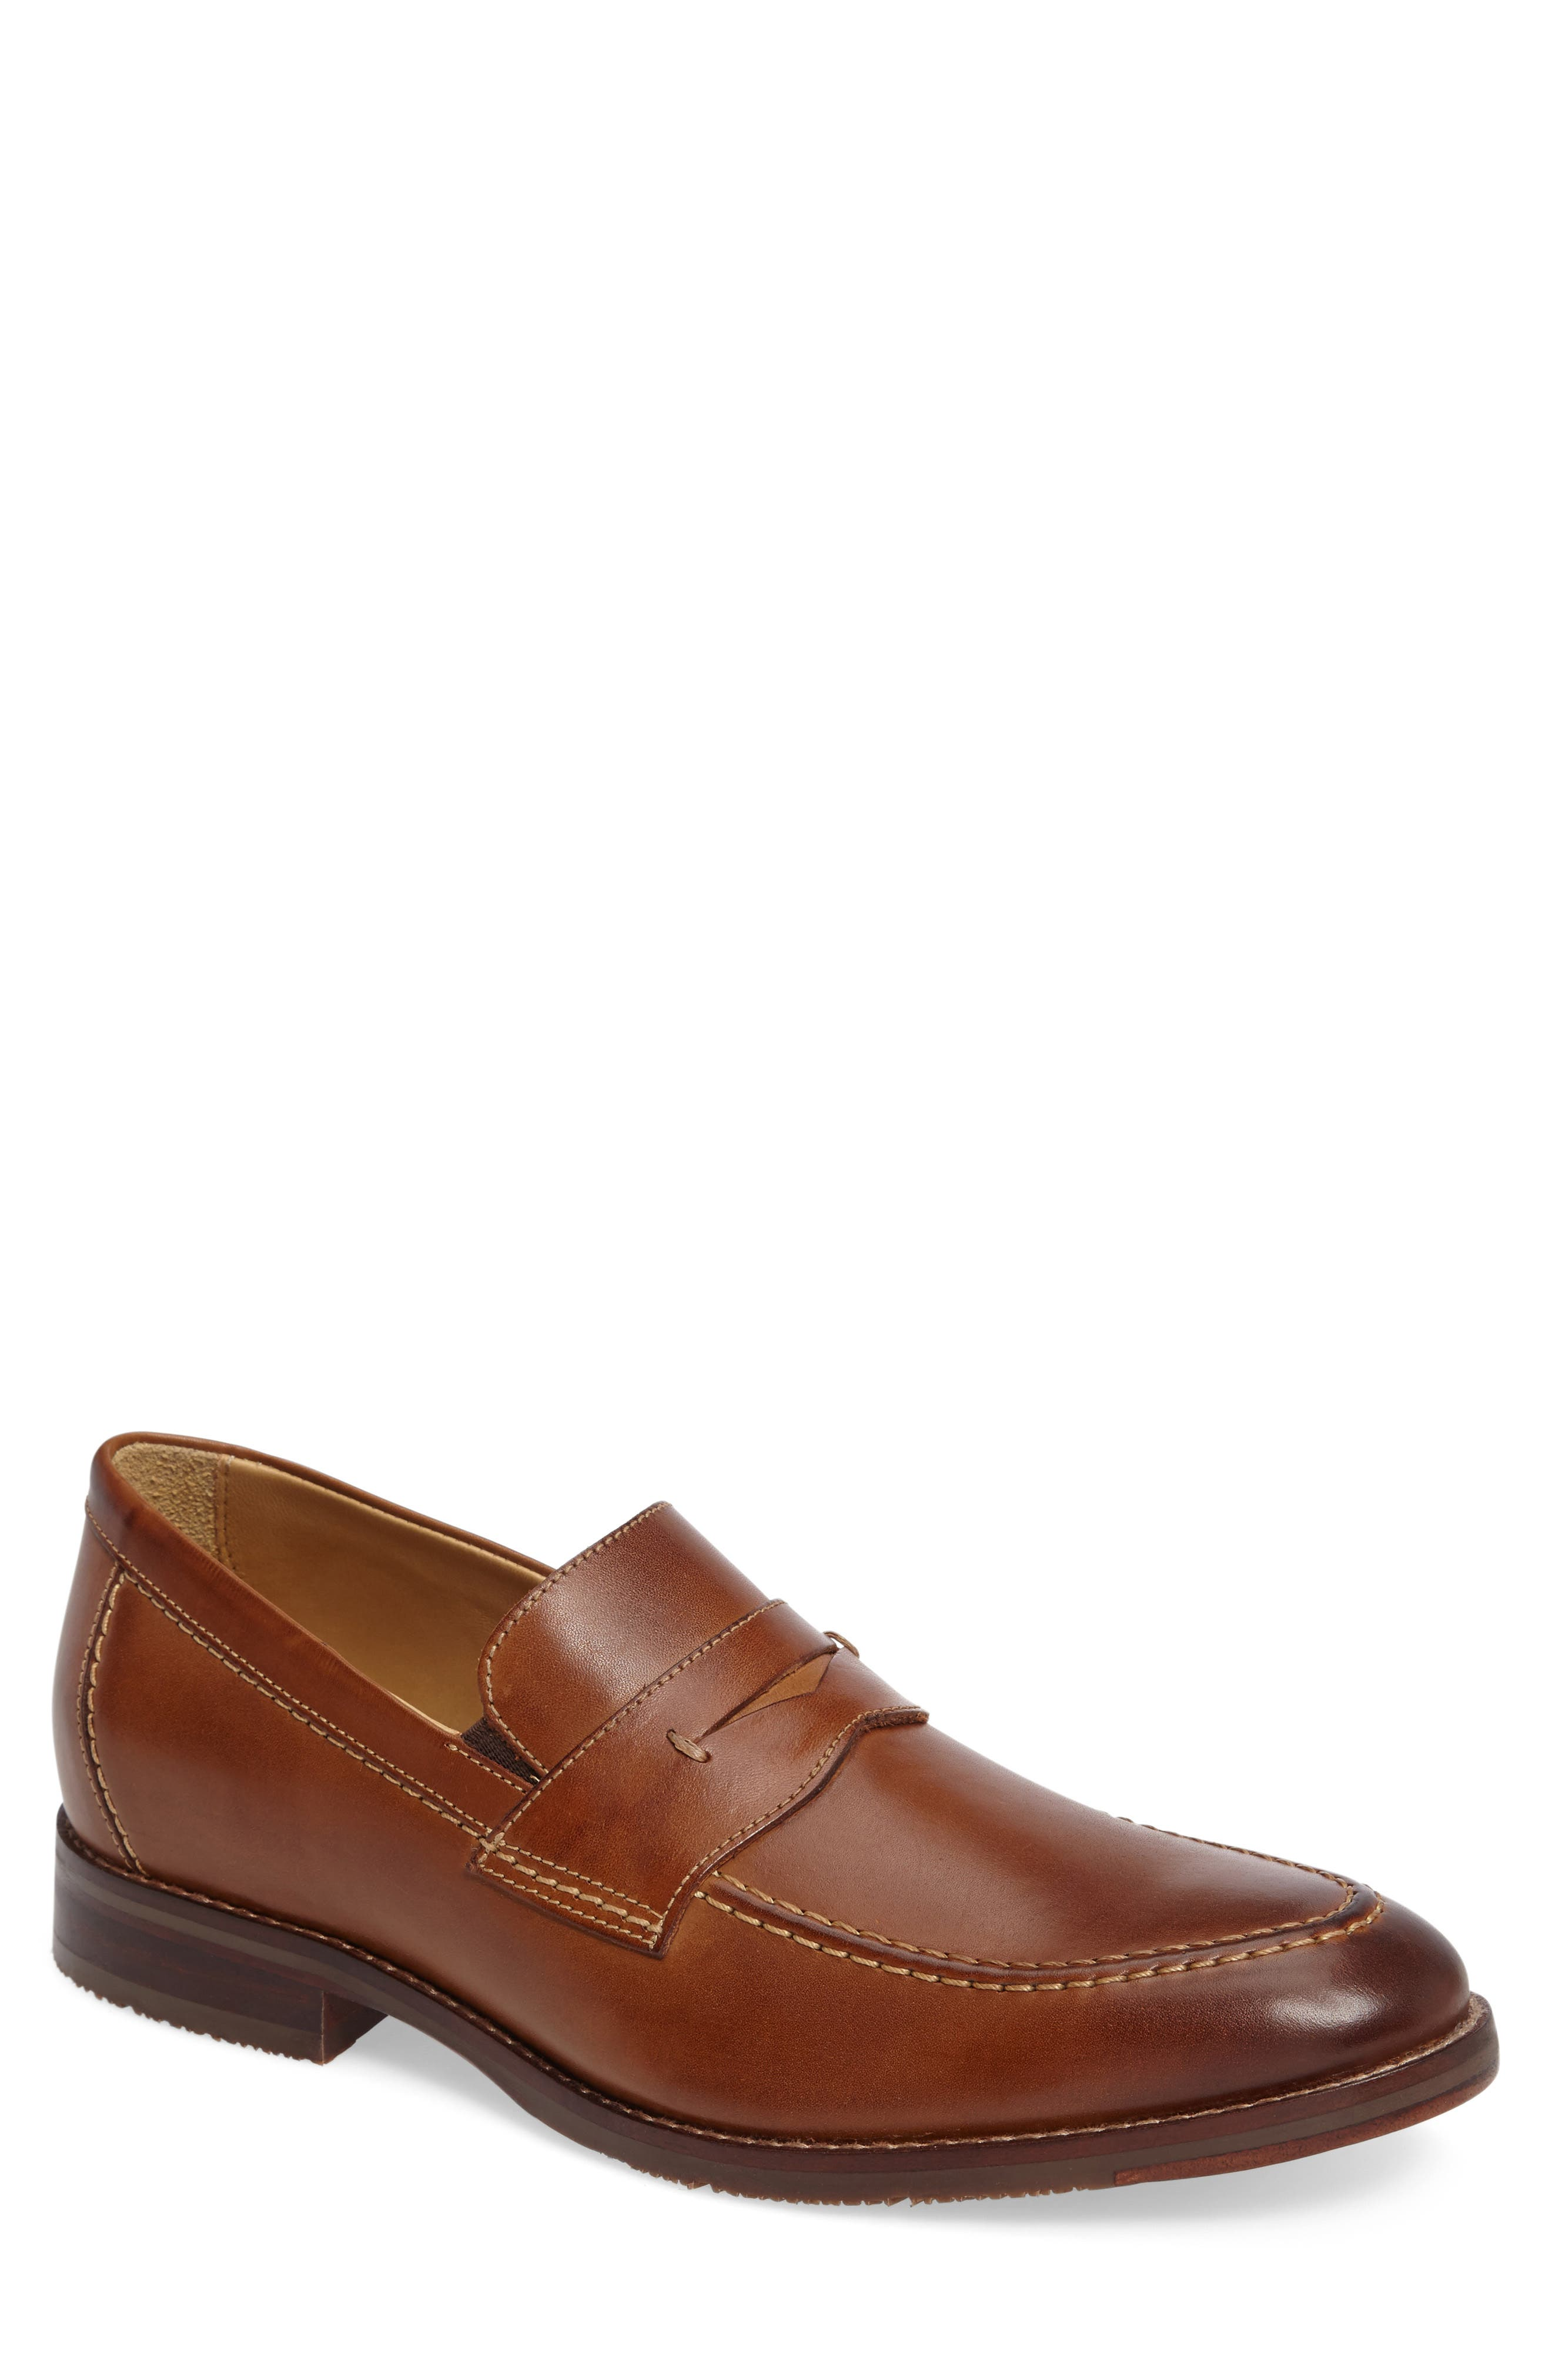 Garner Penny Loafer,                             Main thumbnail 1, color,                             Tan Leather